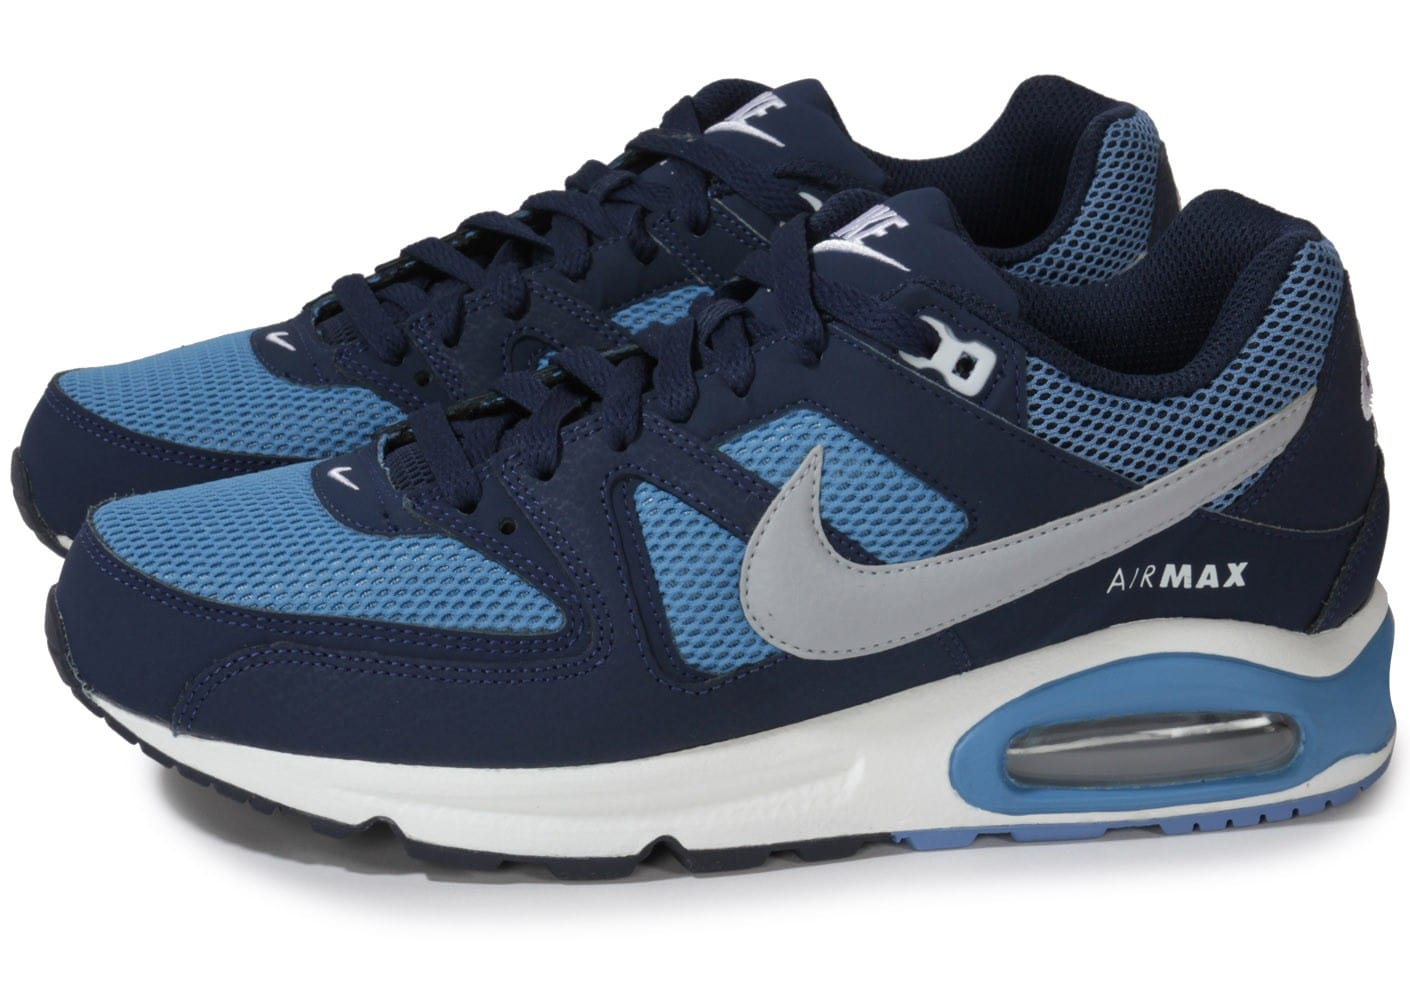 52bae605063 Buy nike air max commando   up to 51% Discounts